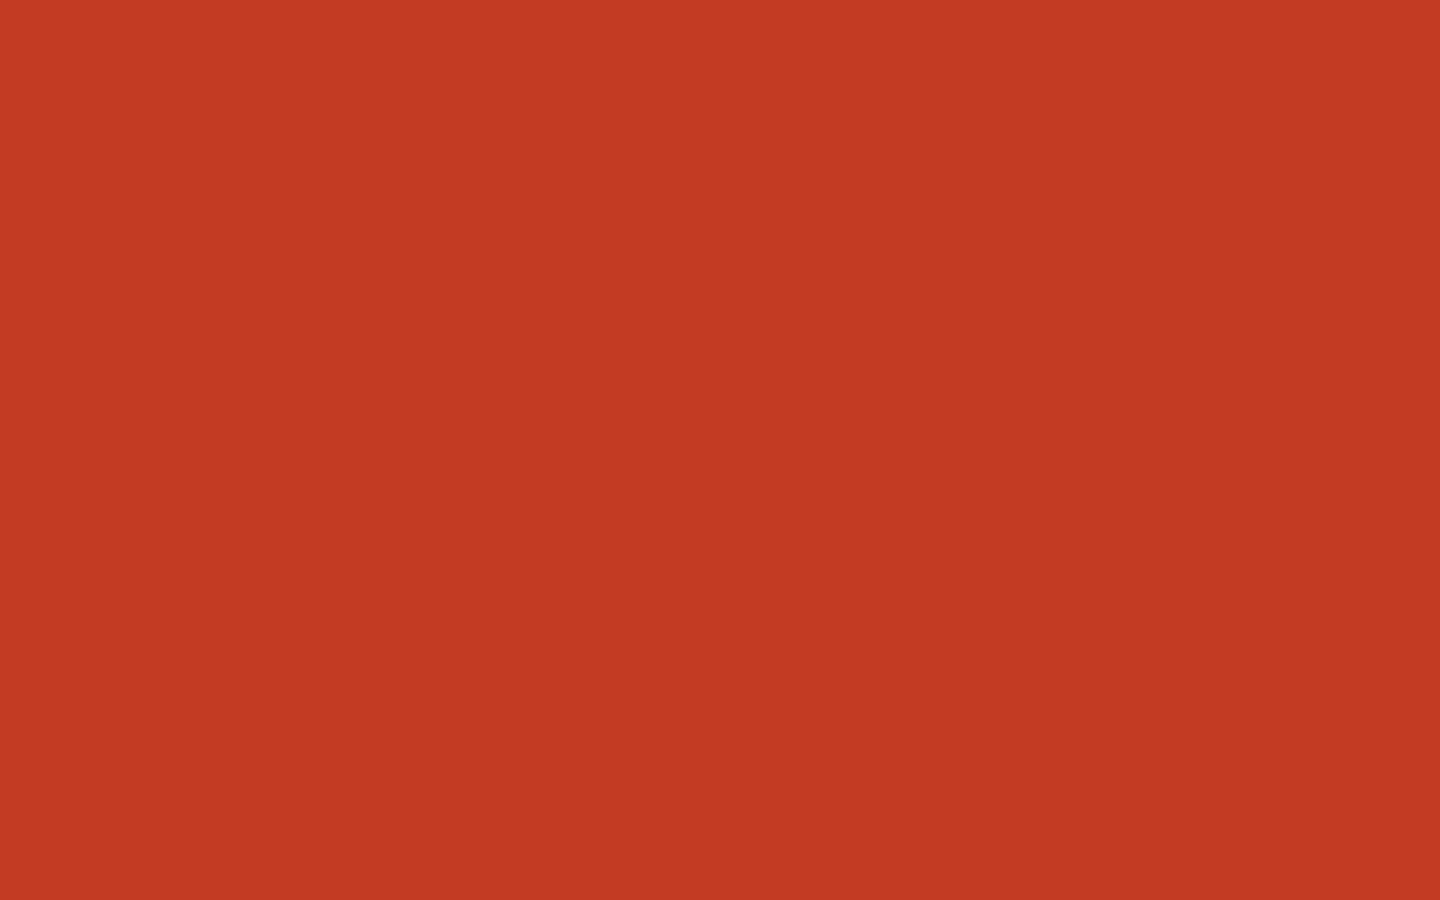 1440x900 Dark Pastel Red Solid Color Background